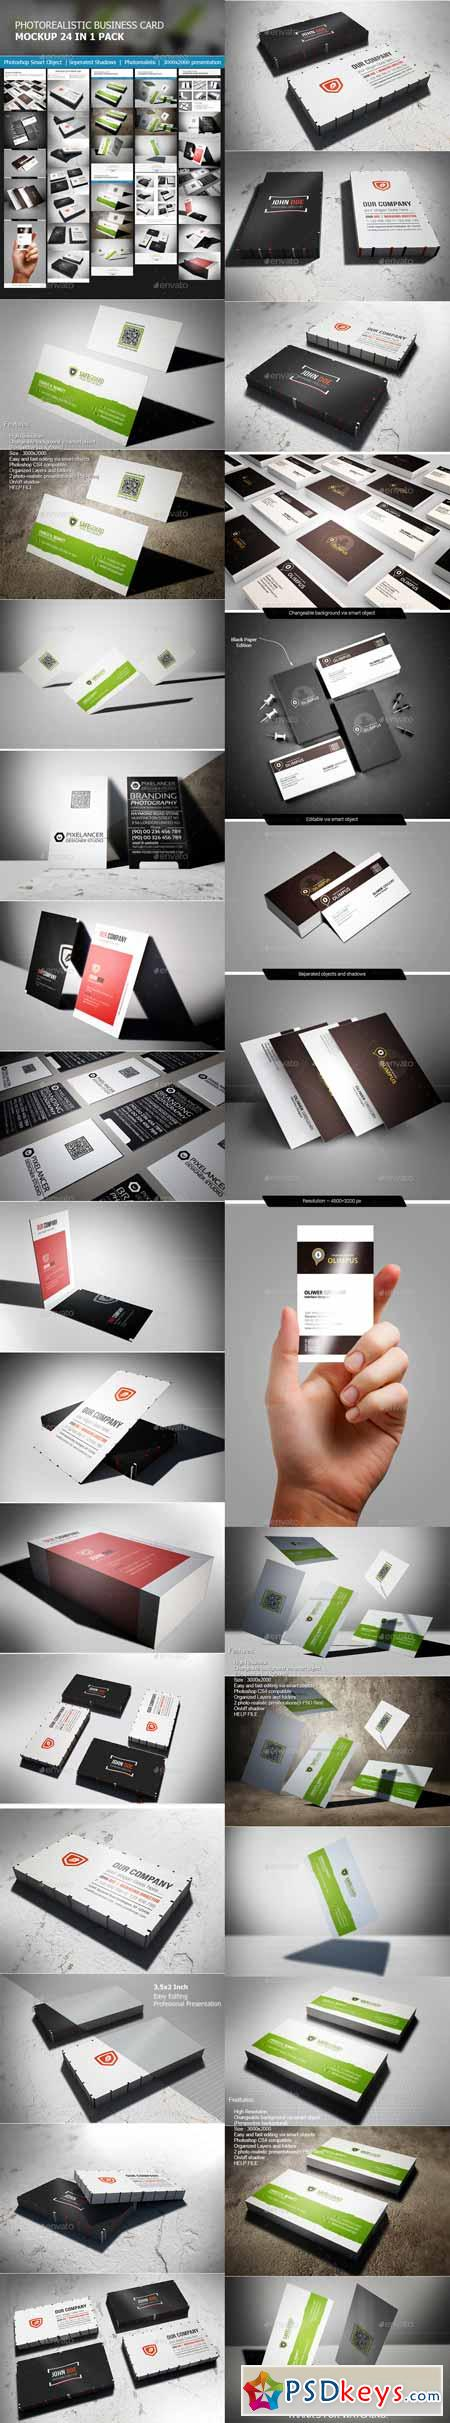 Business Card 24 in 1 Bundle 11530204